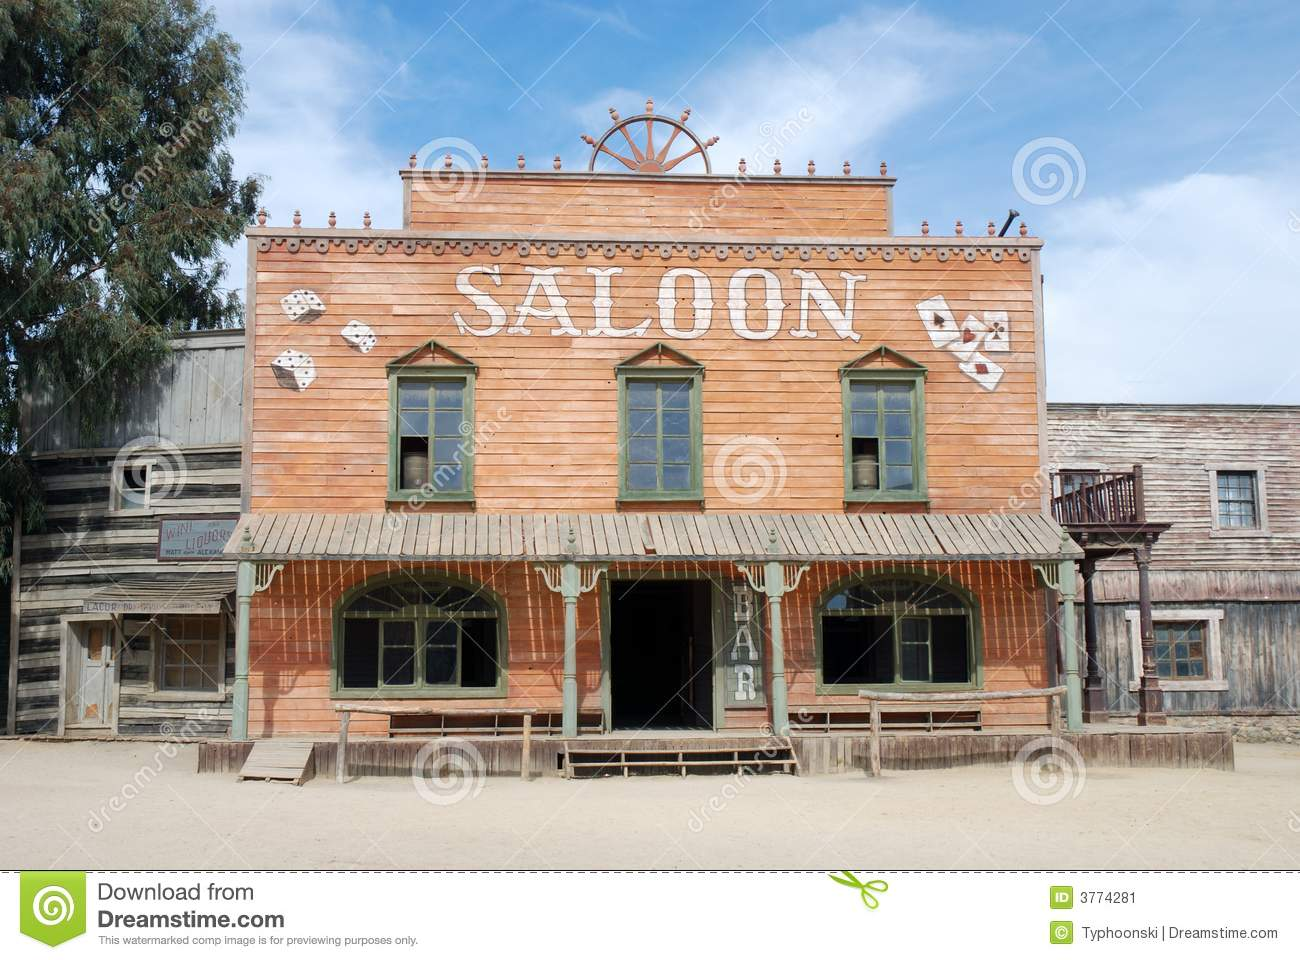 Saloon in an old American town